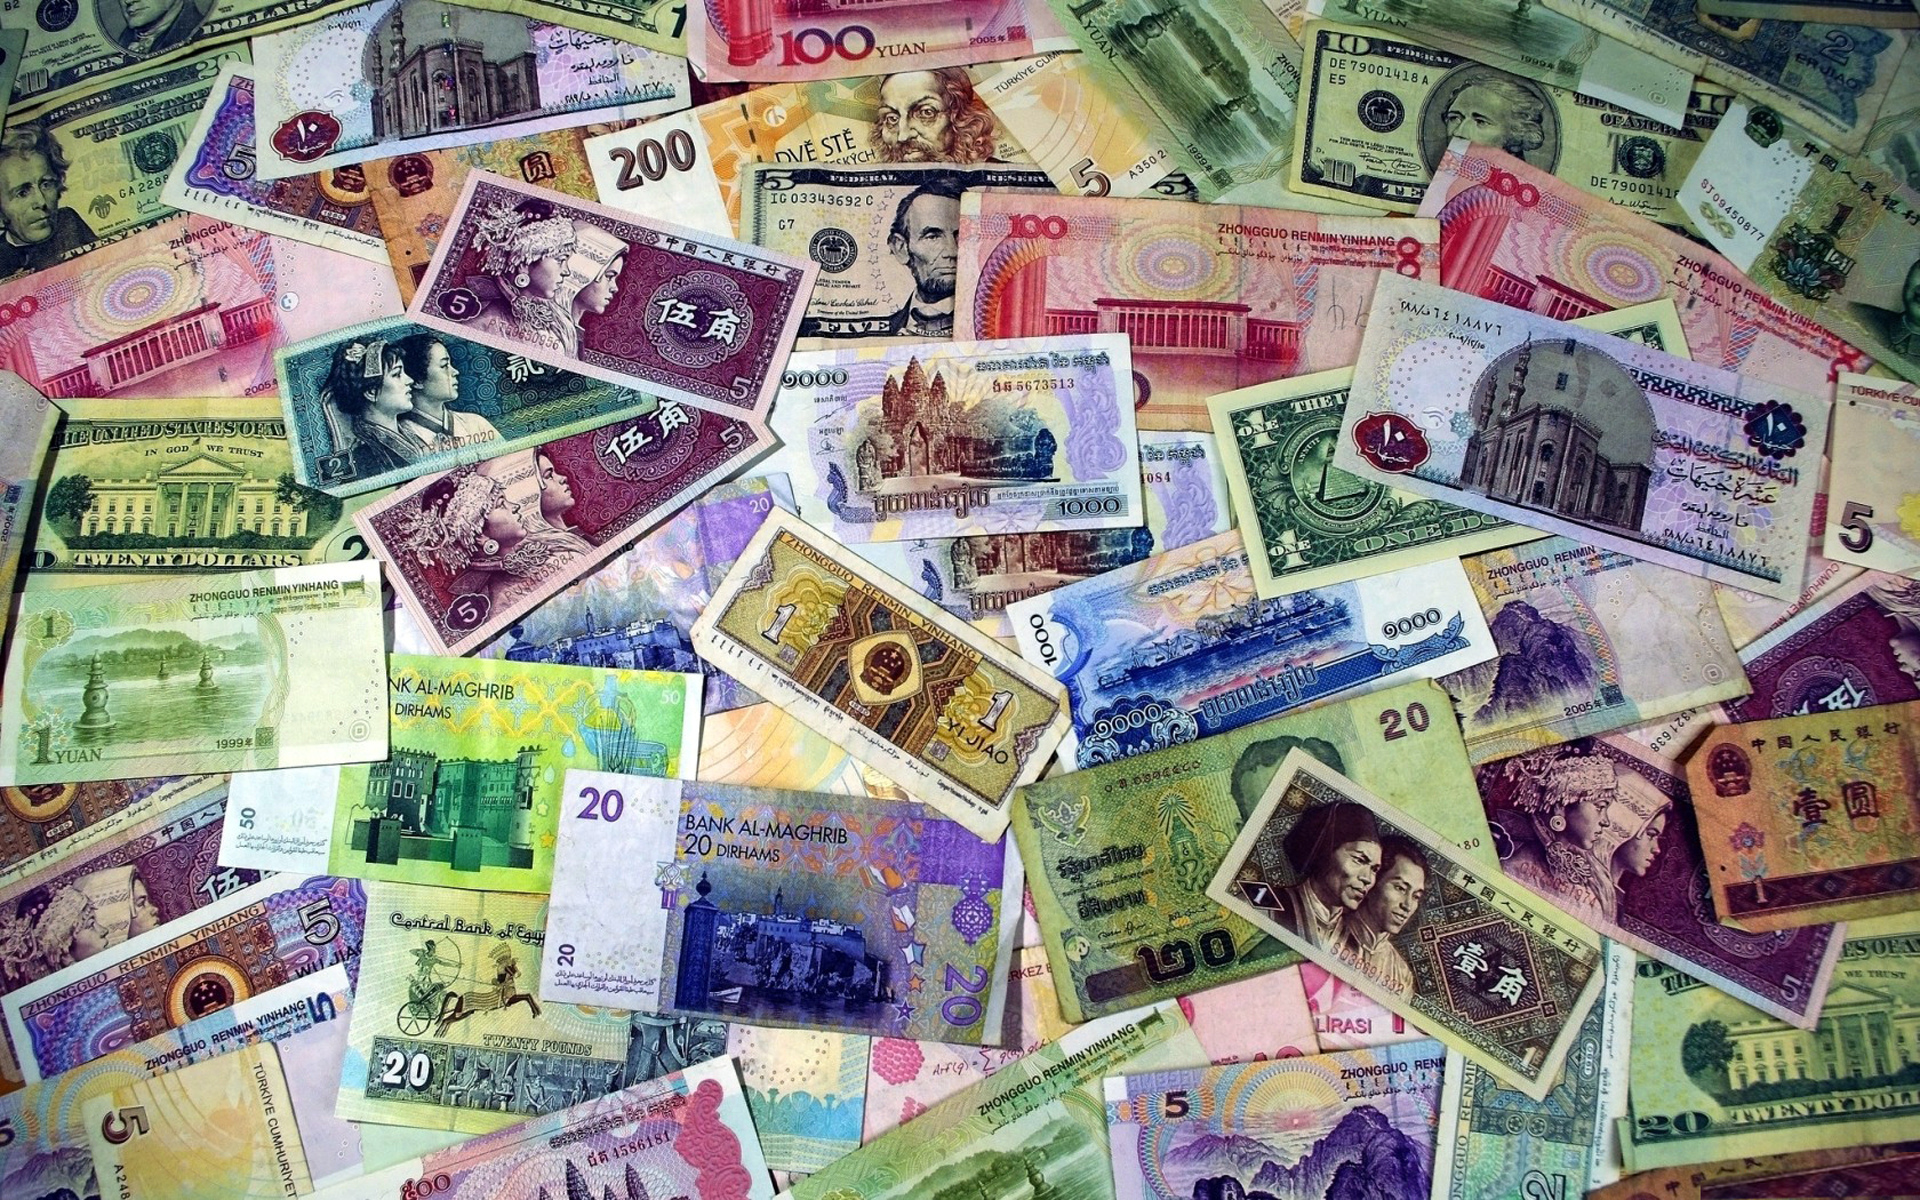 The Color Of Money Fondo De Pantalla Hd Fondo De